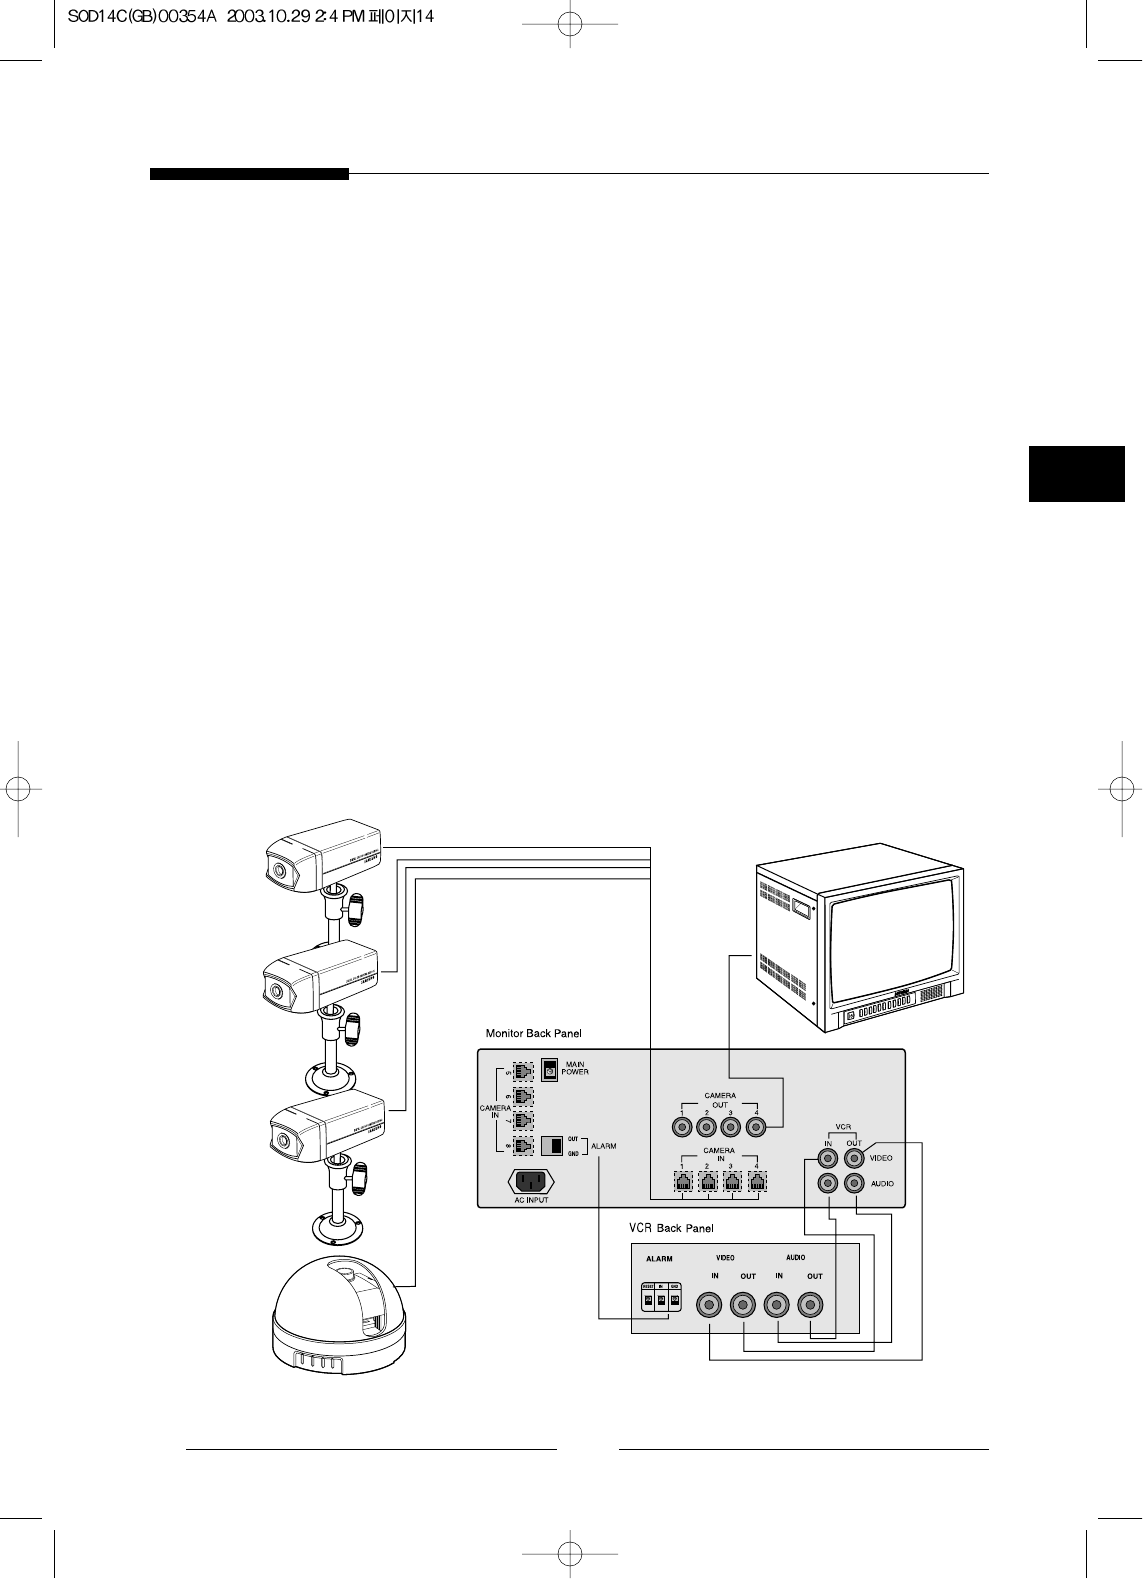 Samsung Security Camera Wiring Diagram from usermanual.wiki